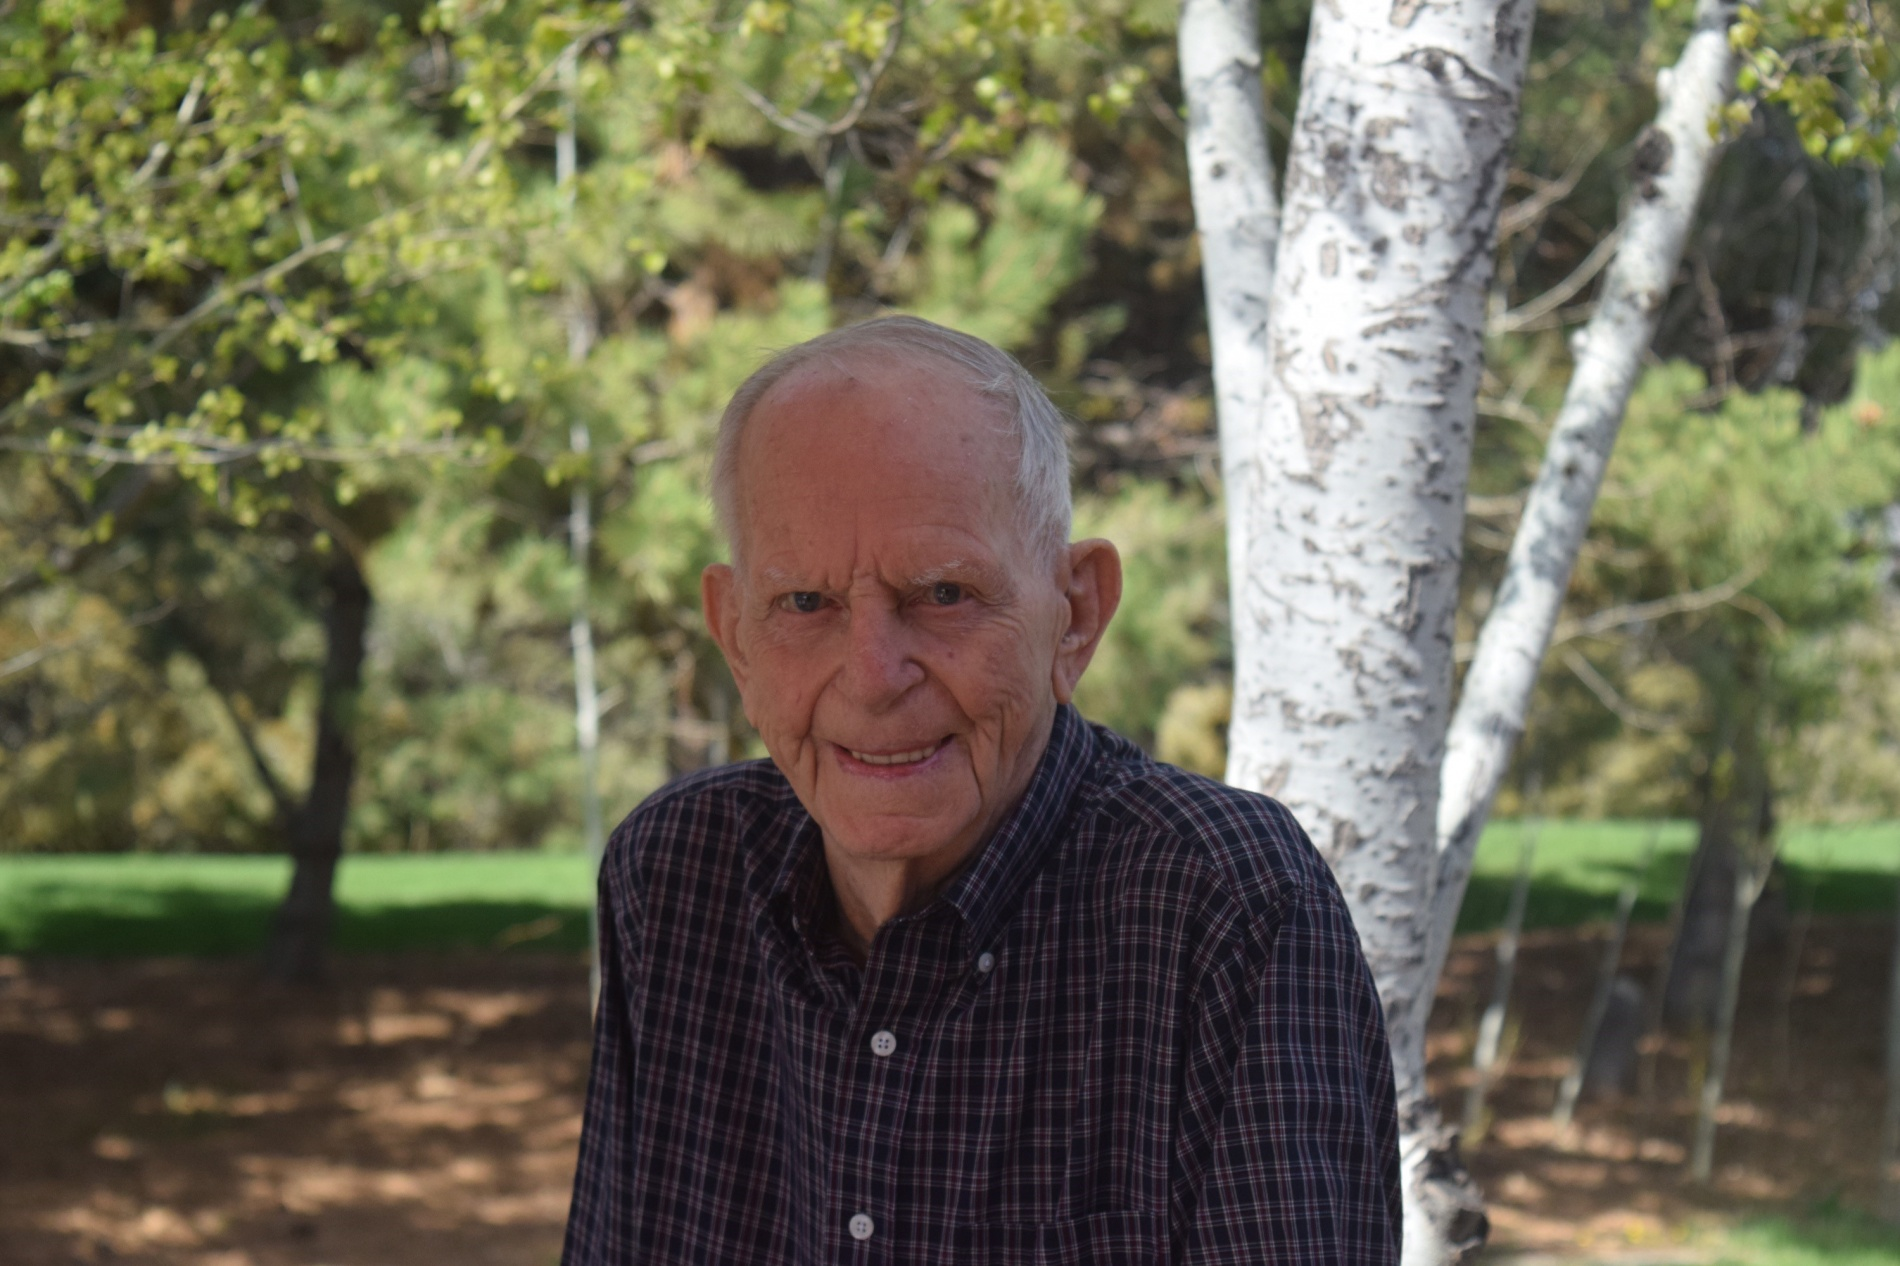 James J. Dedlow, 95, Gering